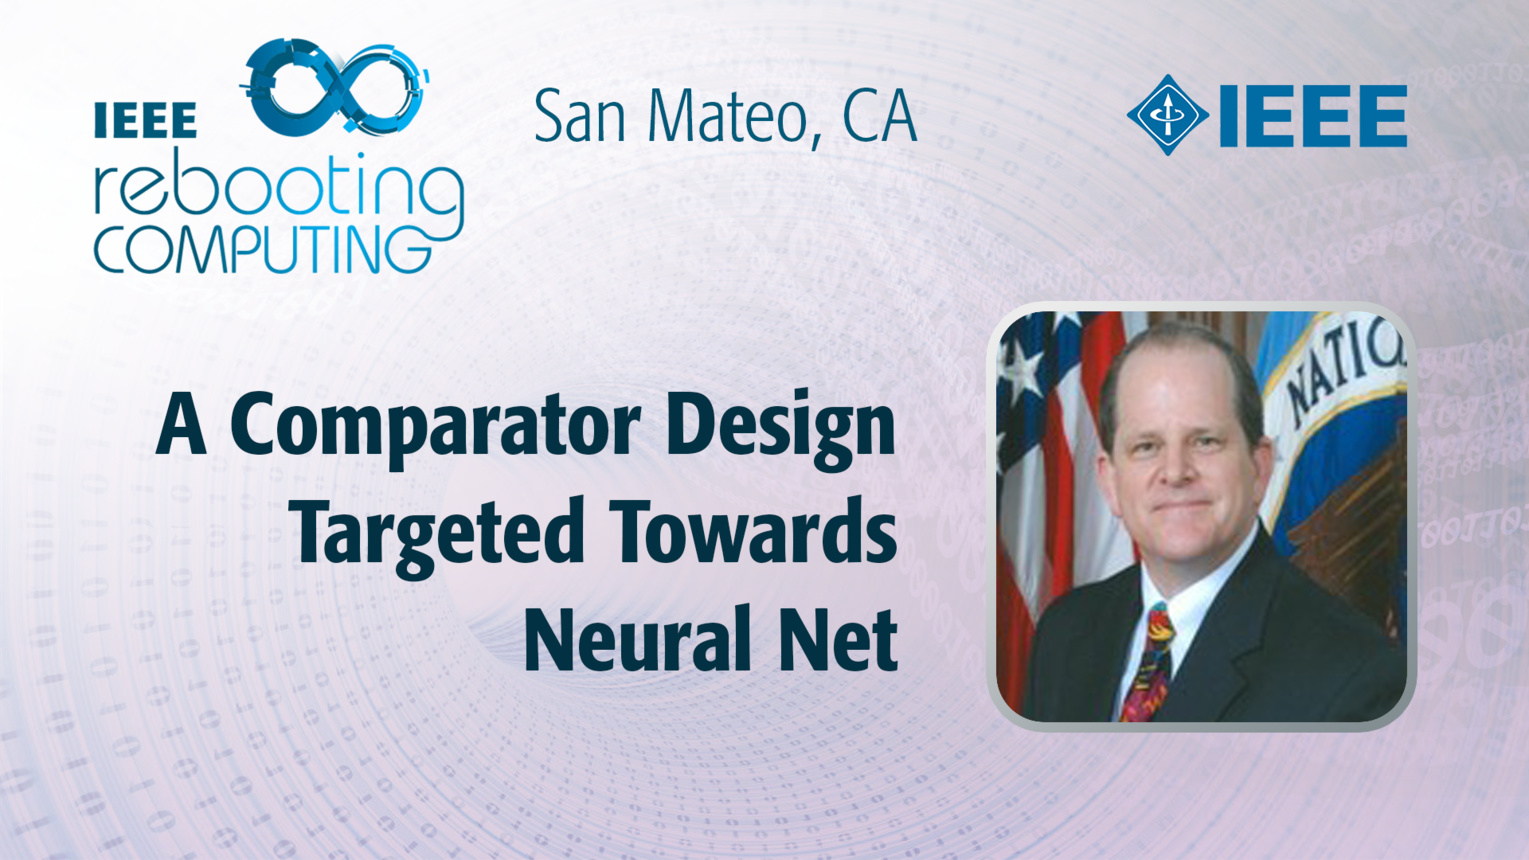 A Comparator Design Targeted Towards Neural Net - David Mountain - ICRC San Mateo, 2019